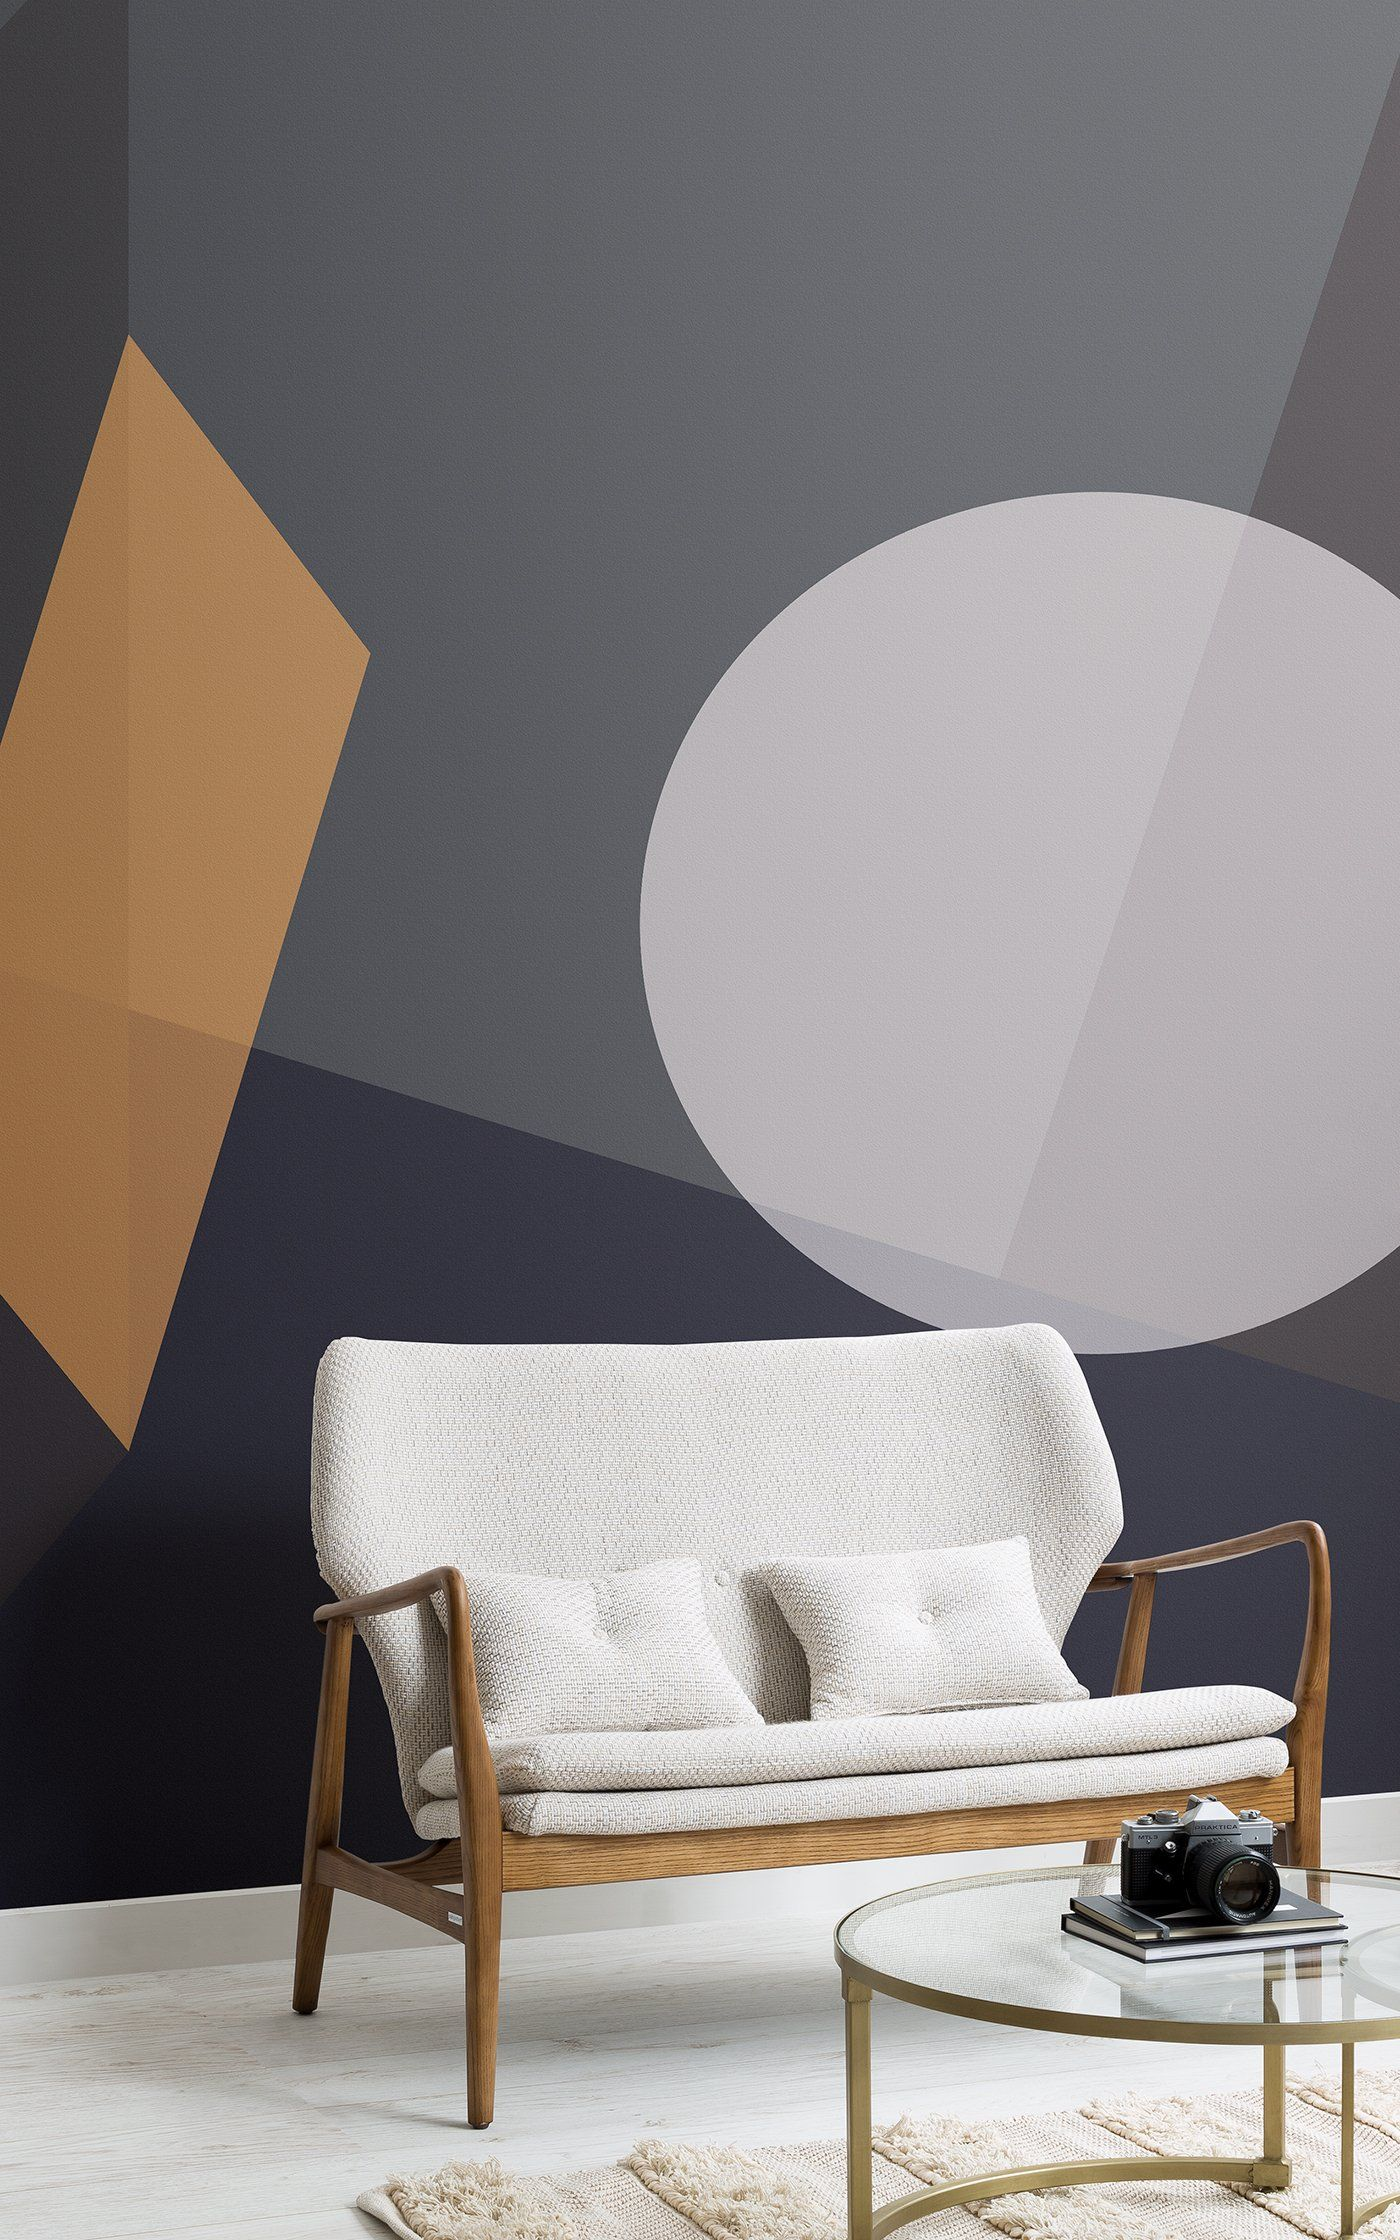 6 Wallpaper Ideas To Create A Modern Living Room In 2020